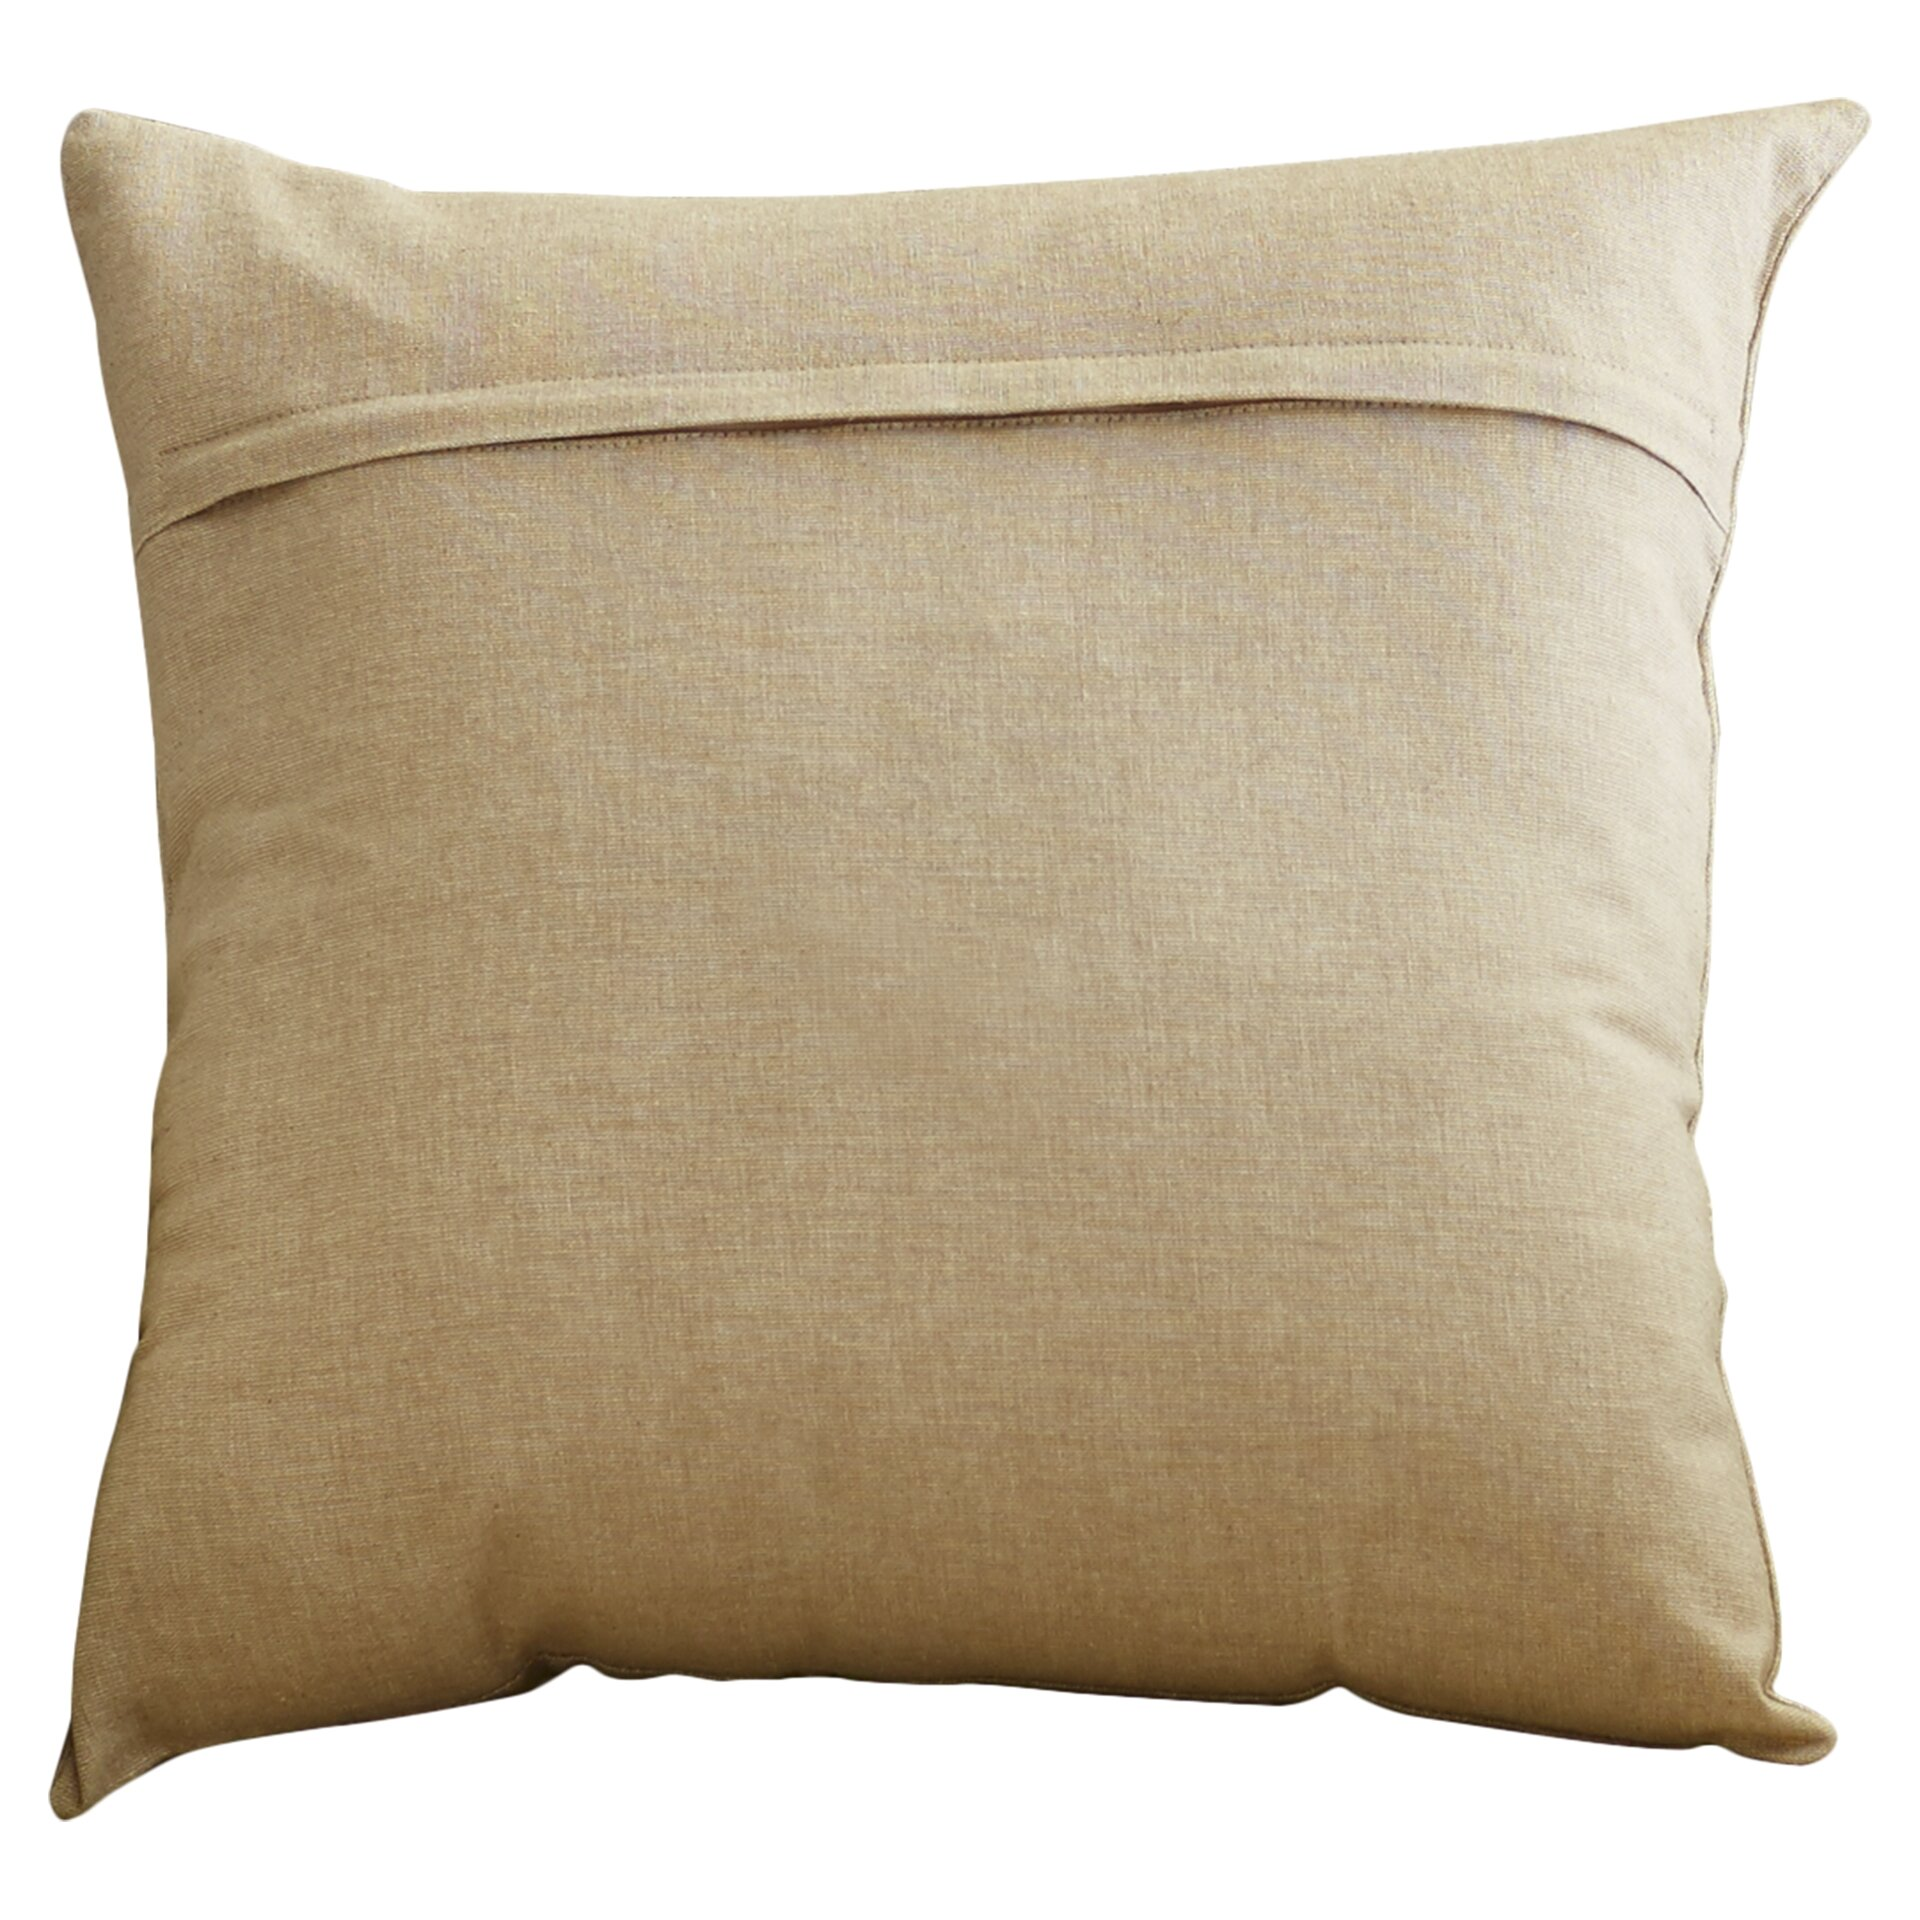 Throw Pillow In French : August Grove Evelina Classical French Script Cotton Throw Pillow & Reviews Wayfair